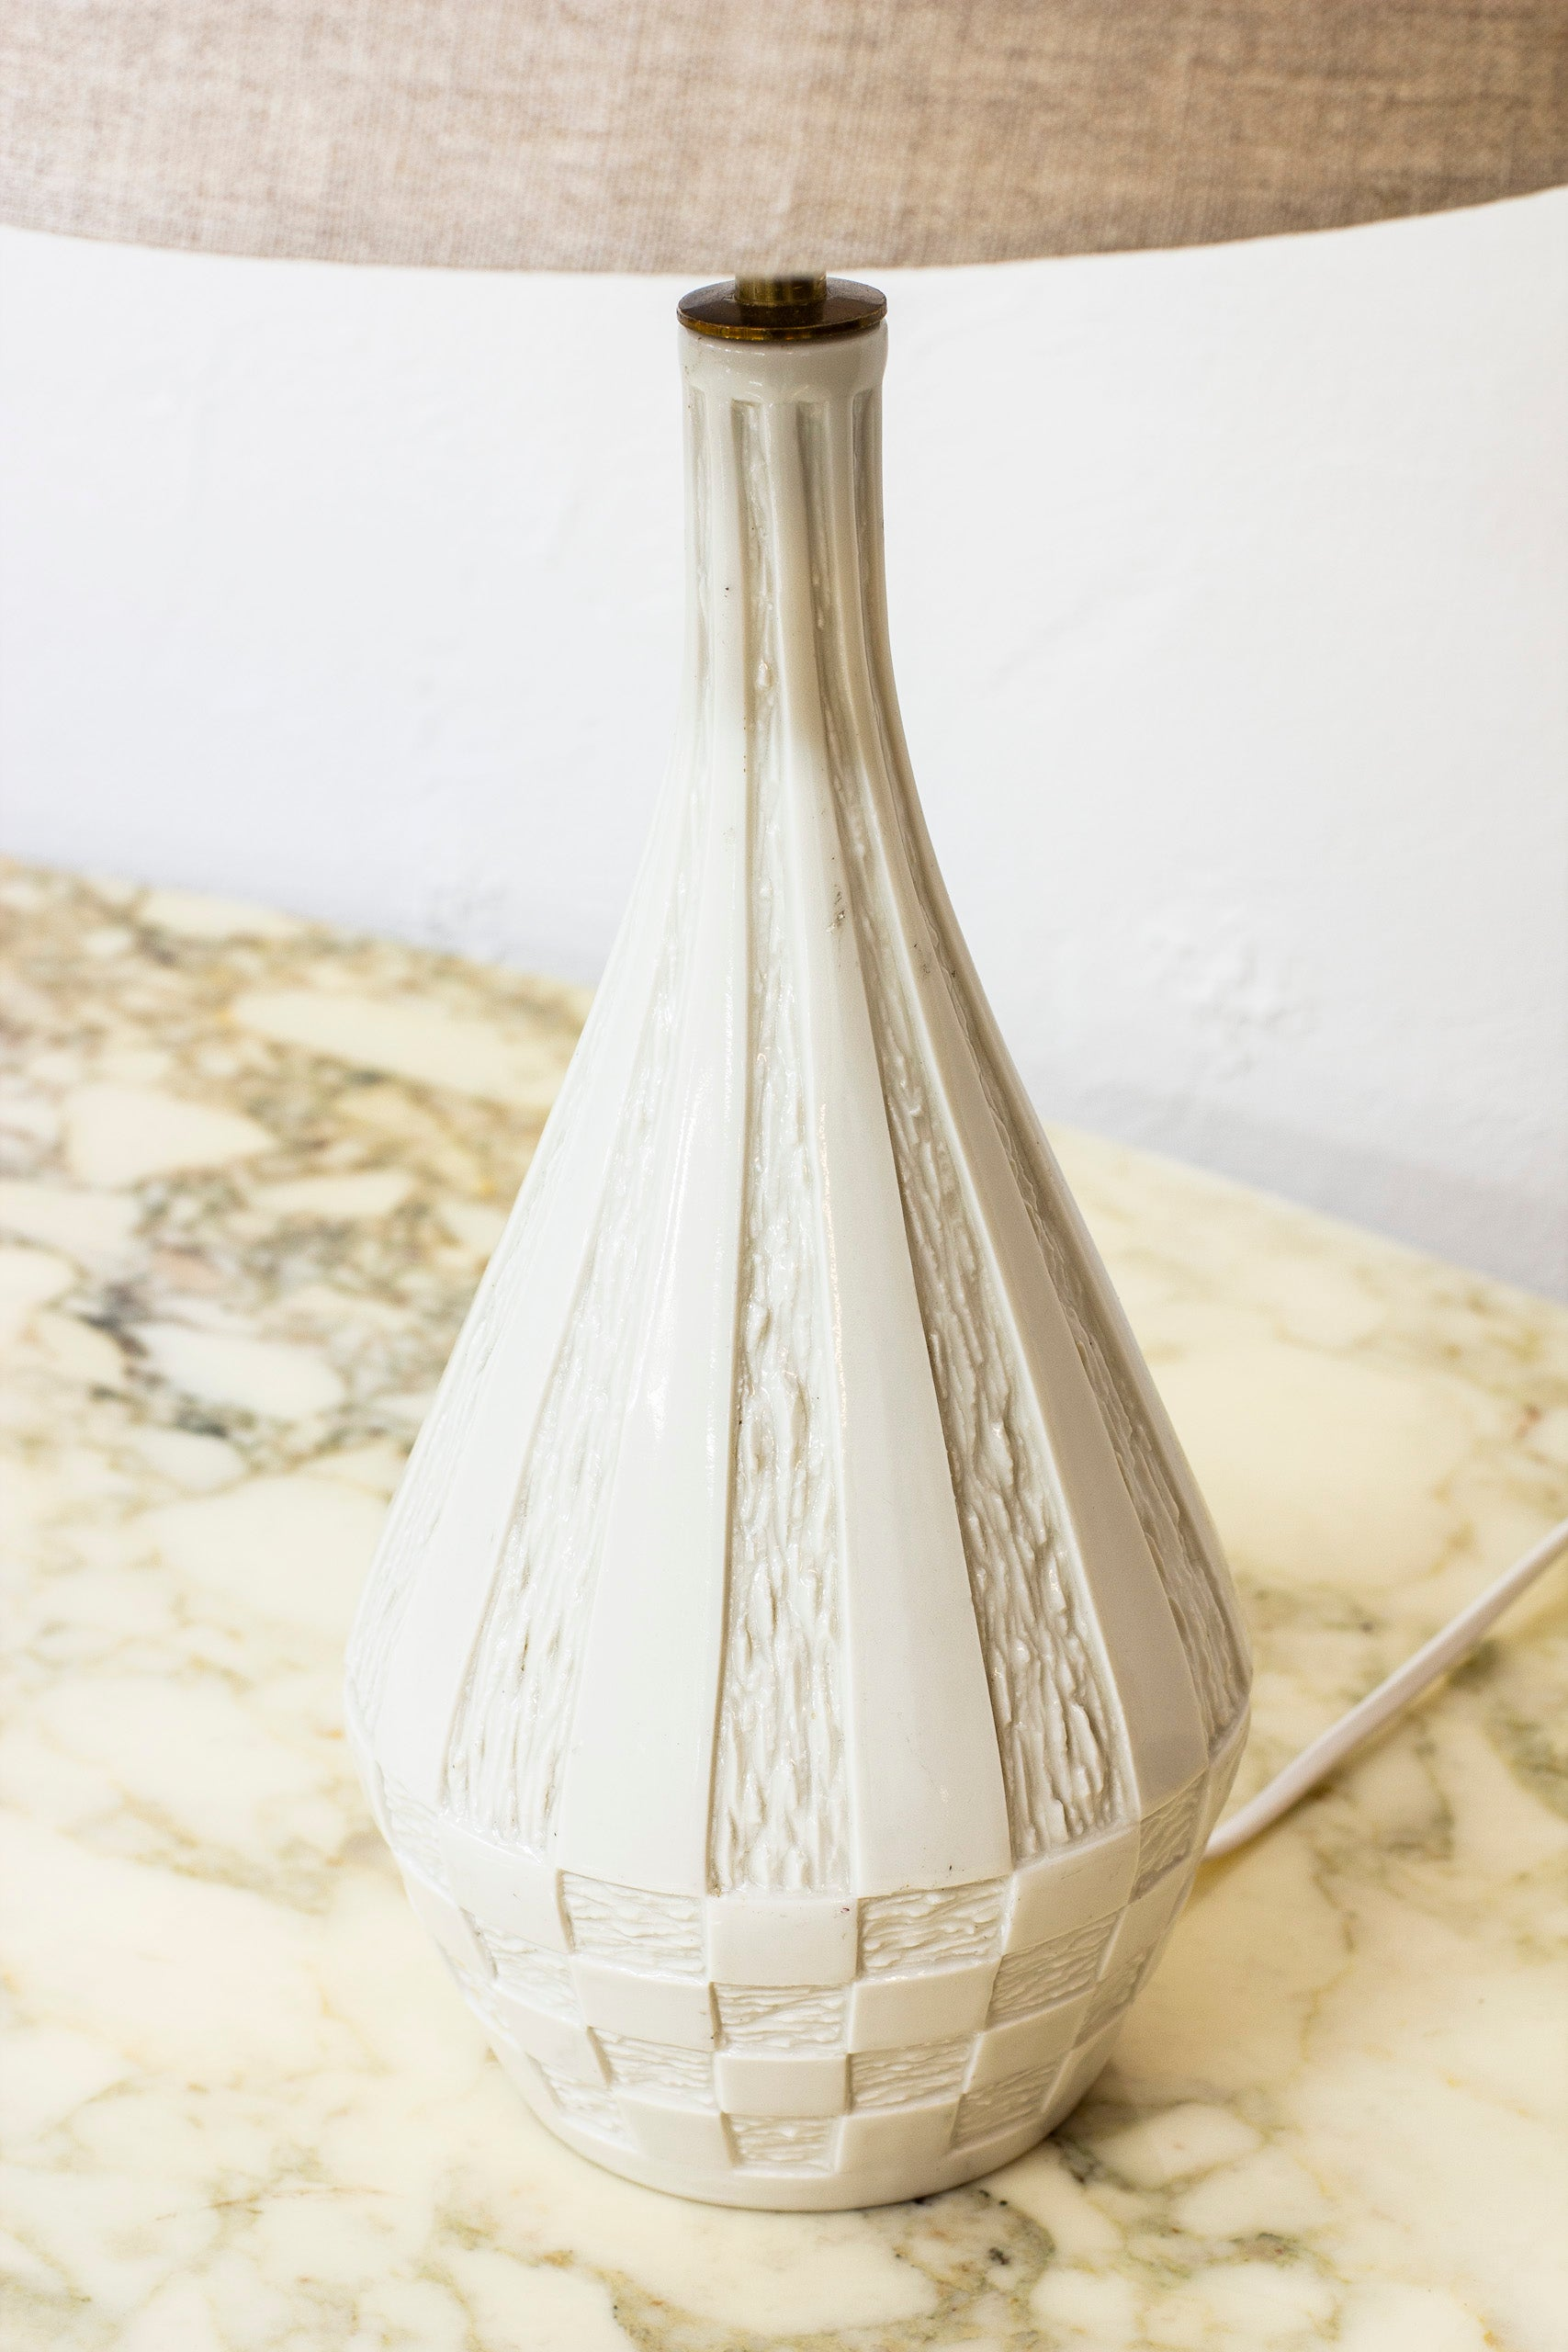 Table lamp by Hertha Bengtsson